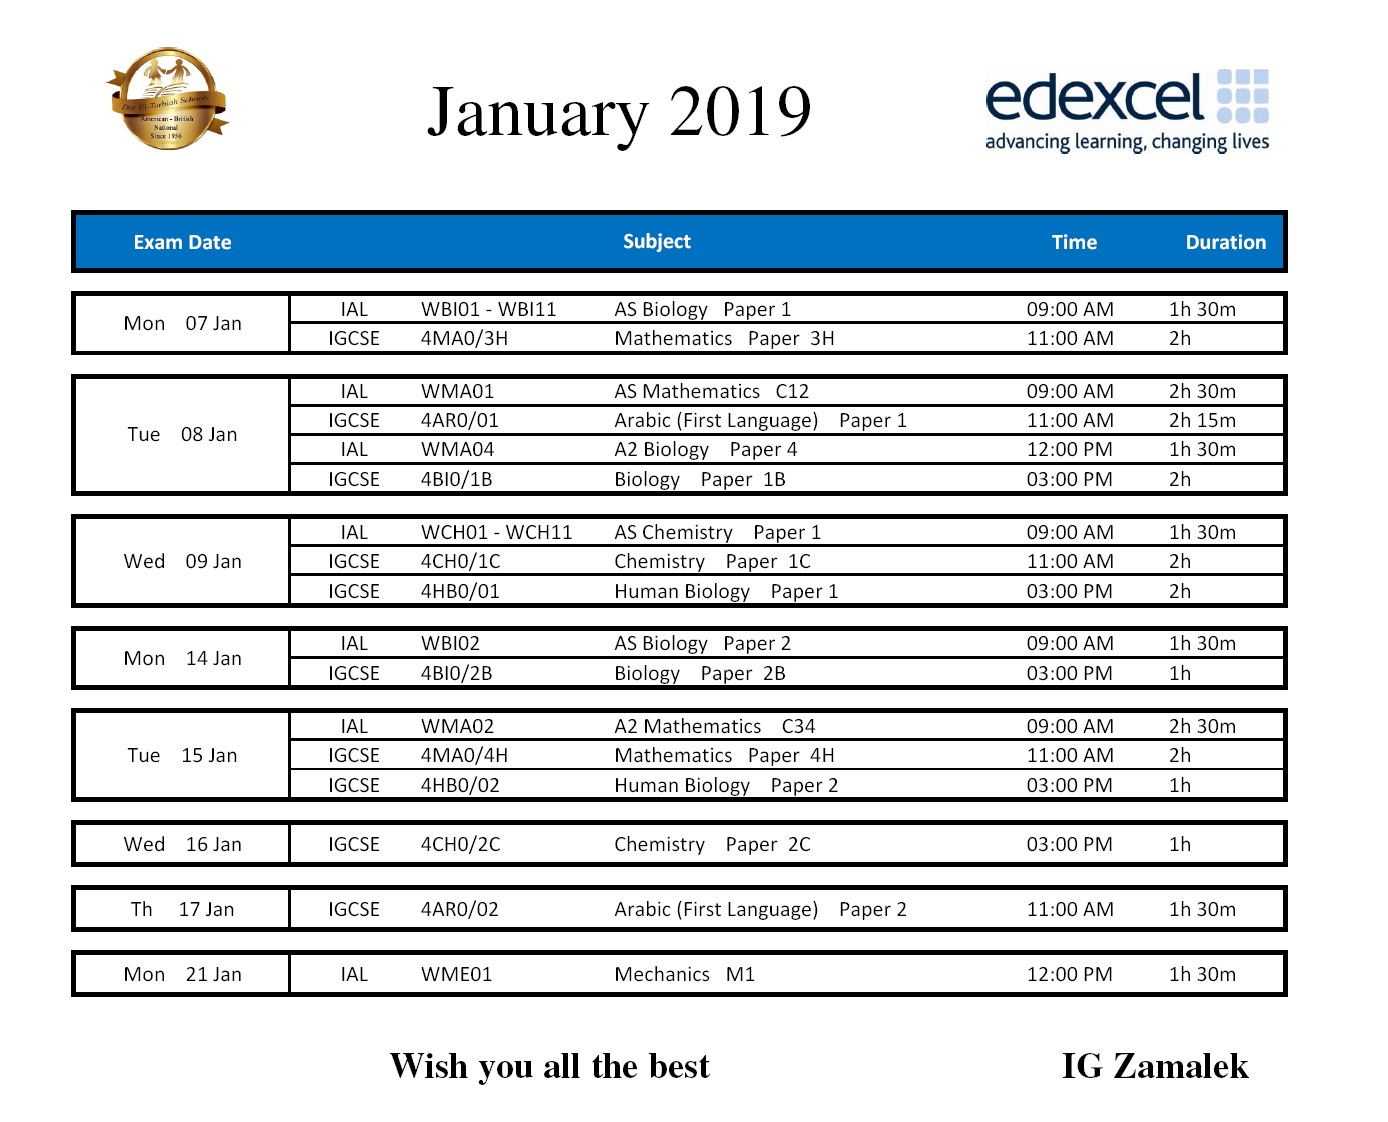 IG Zamalek : Jan 2019 Timetable